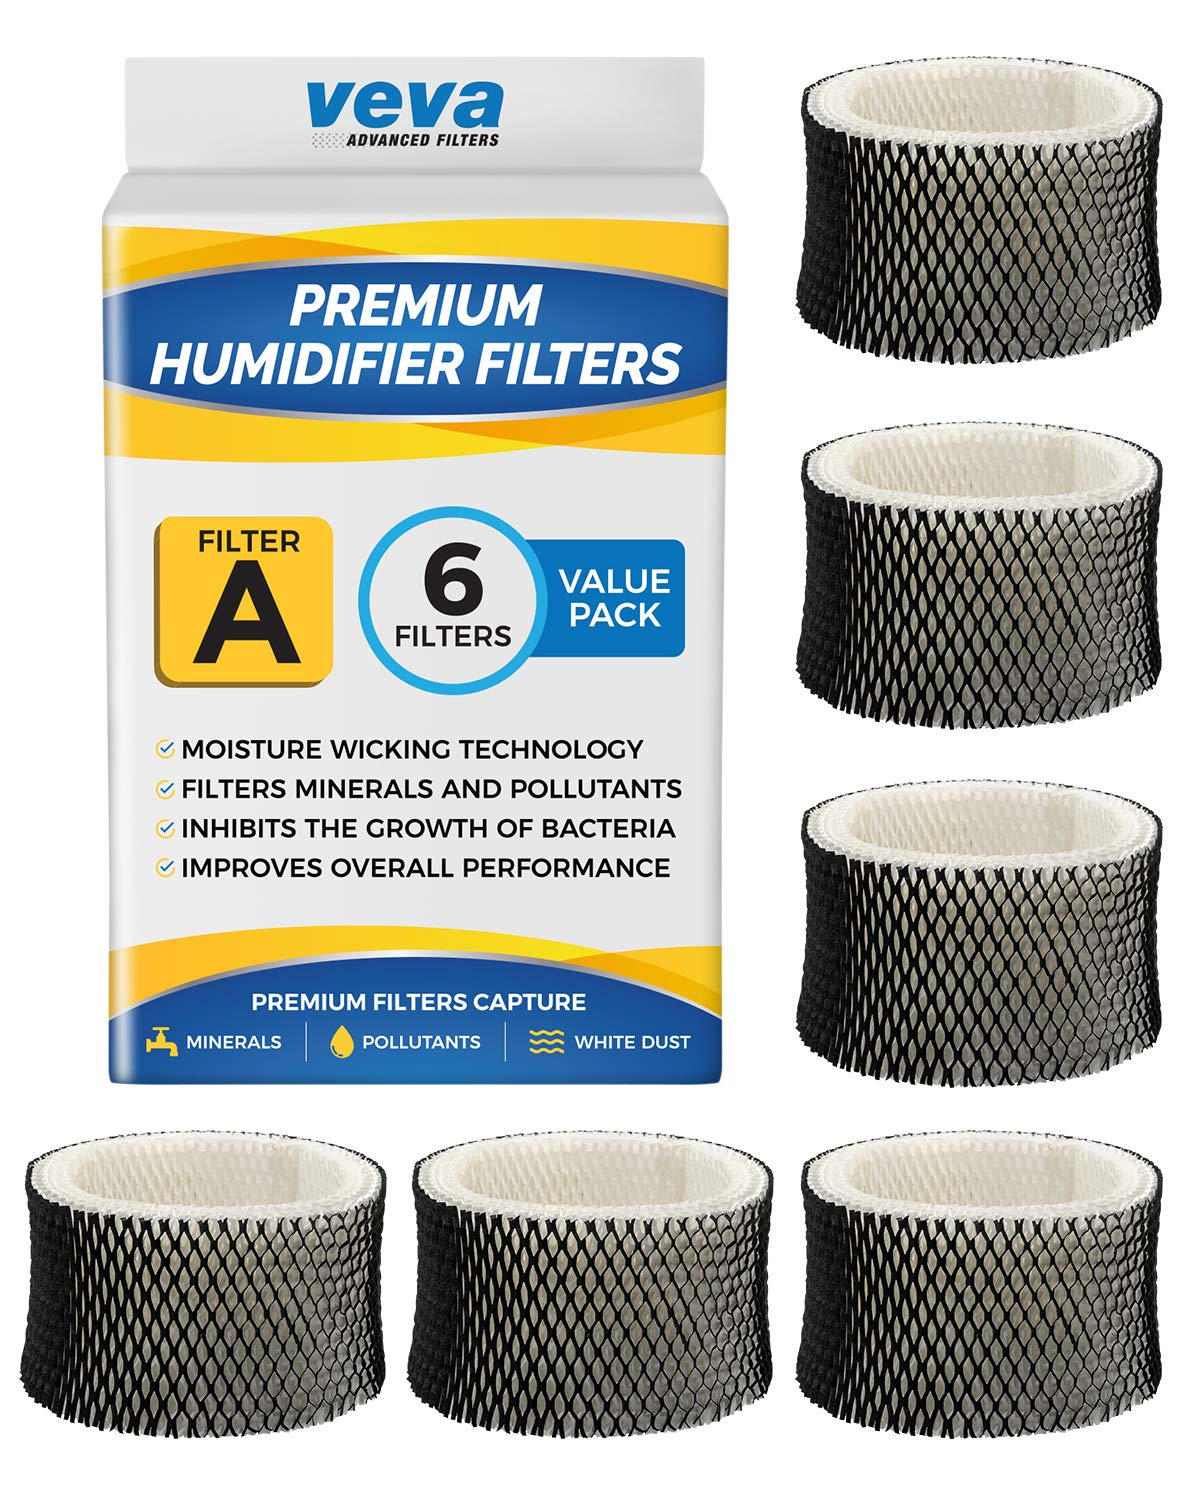 VEVA 6 Pack Premium Humidifier Filters Replacement for Holmes Filter A, HWF62, HWF62S, and Other Sunbeam Cool Mist Humidifiers by VEVA